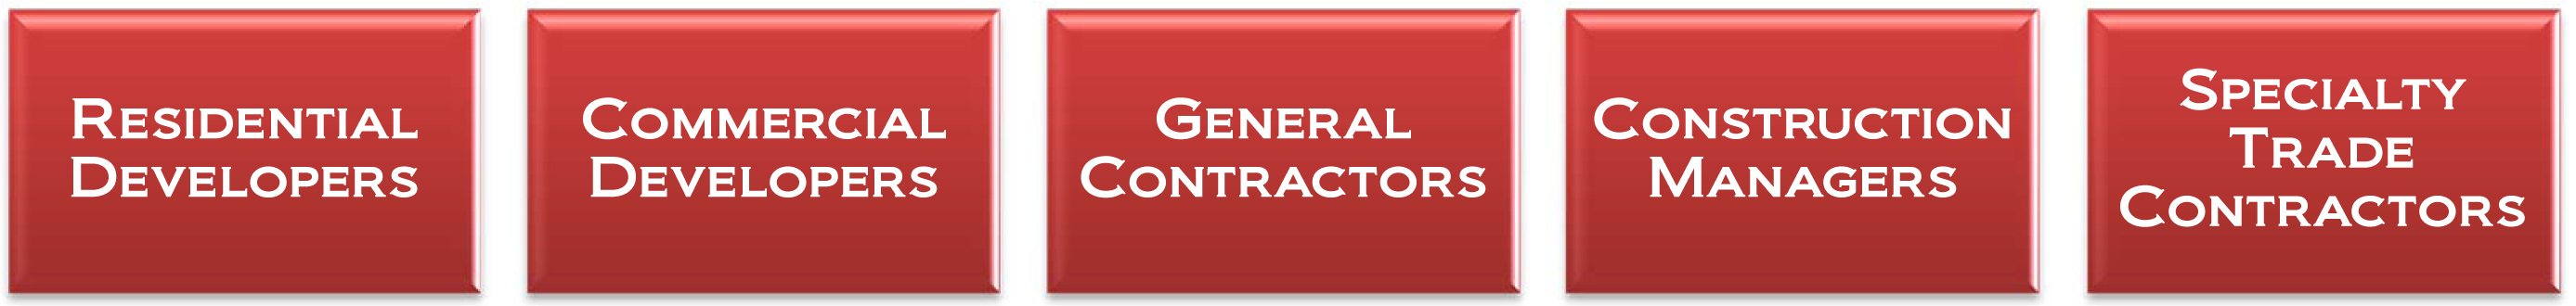 Residential developers commercial developers general contractors construction managers specialty trade contractors